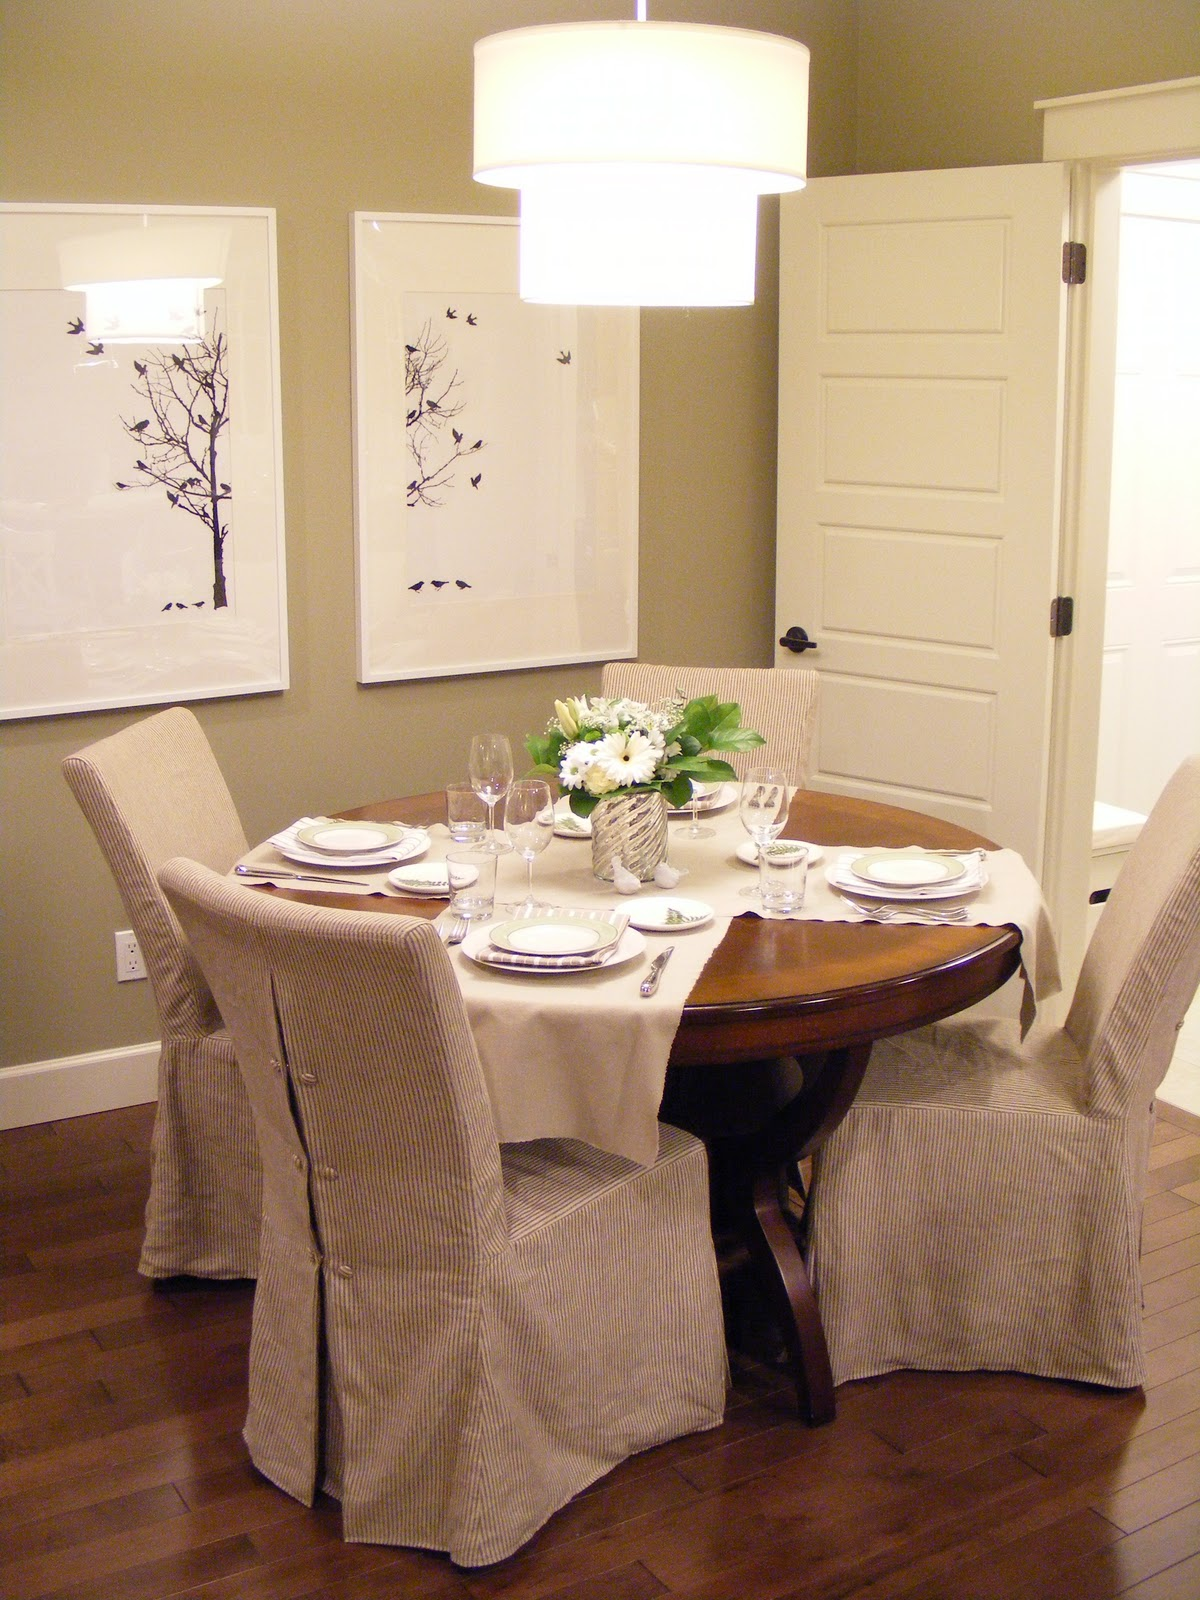 Dining Room Reveal!!